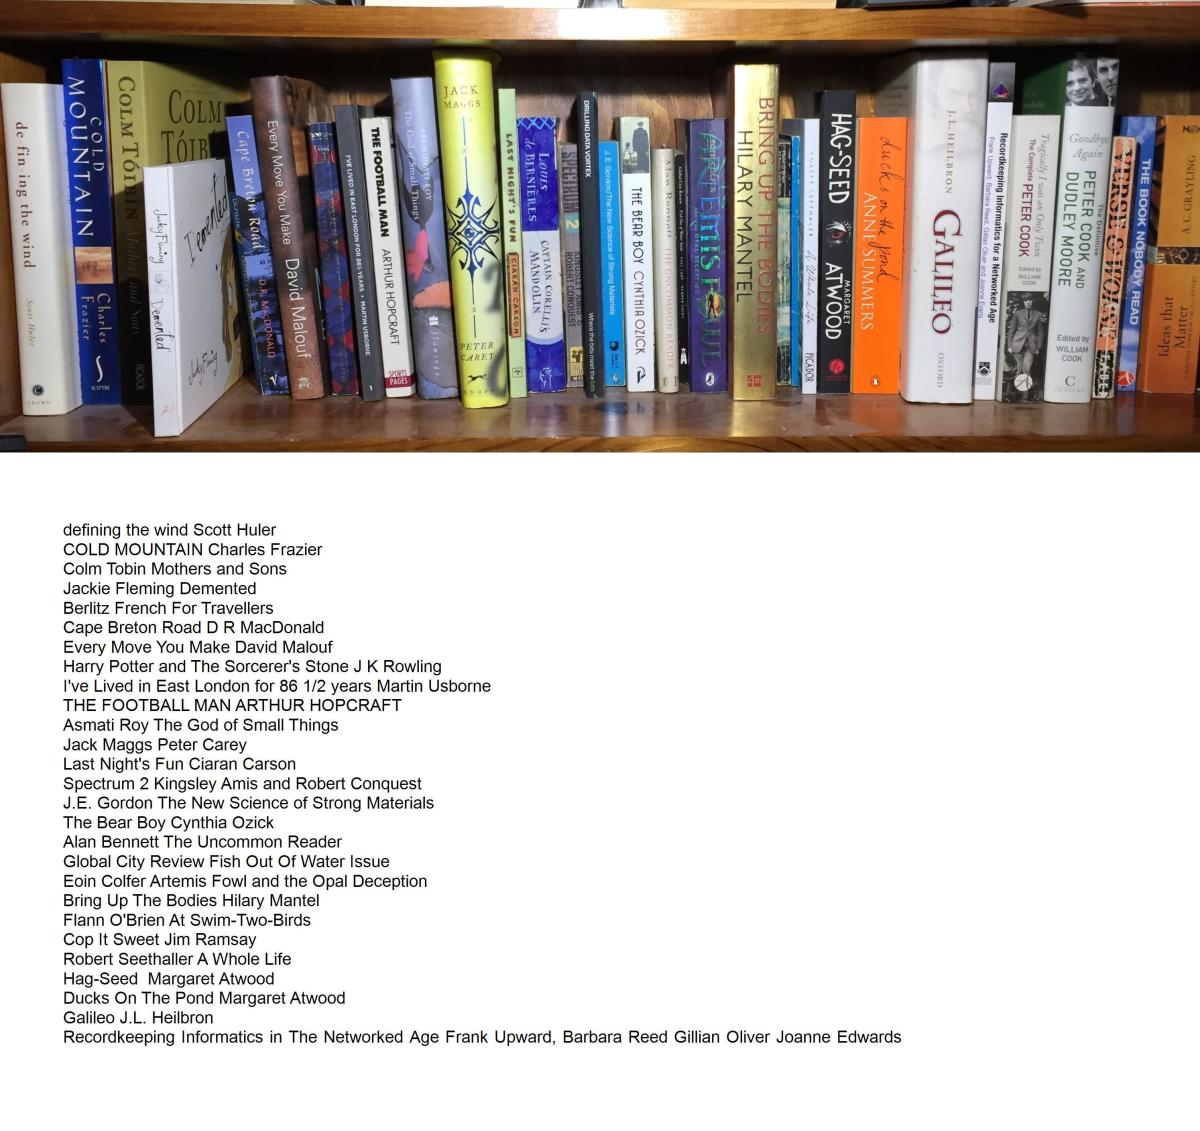 Shelf image with text added to image by Caption Pro